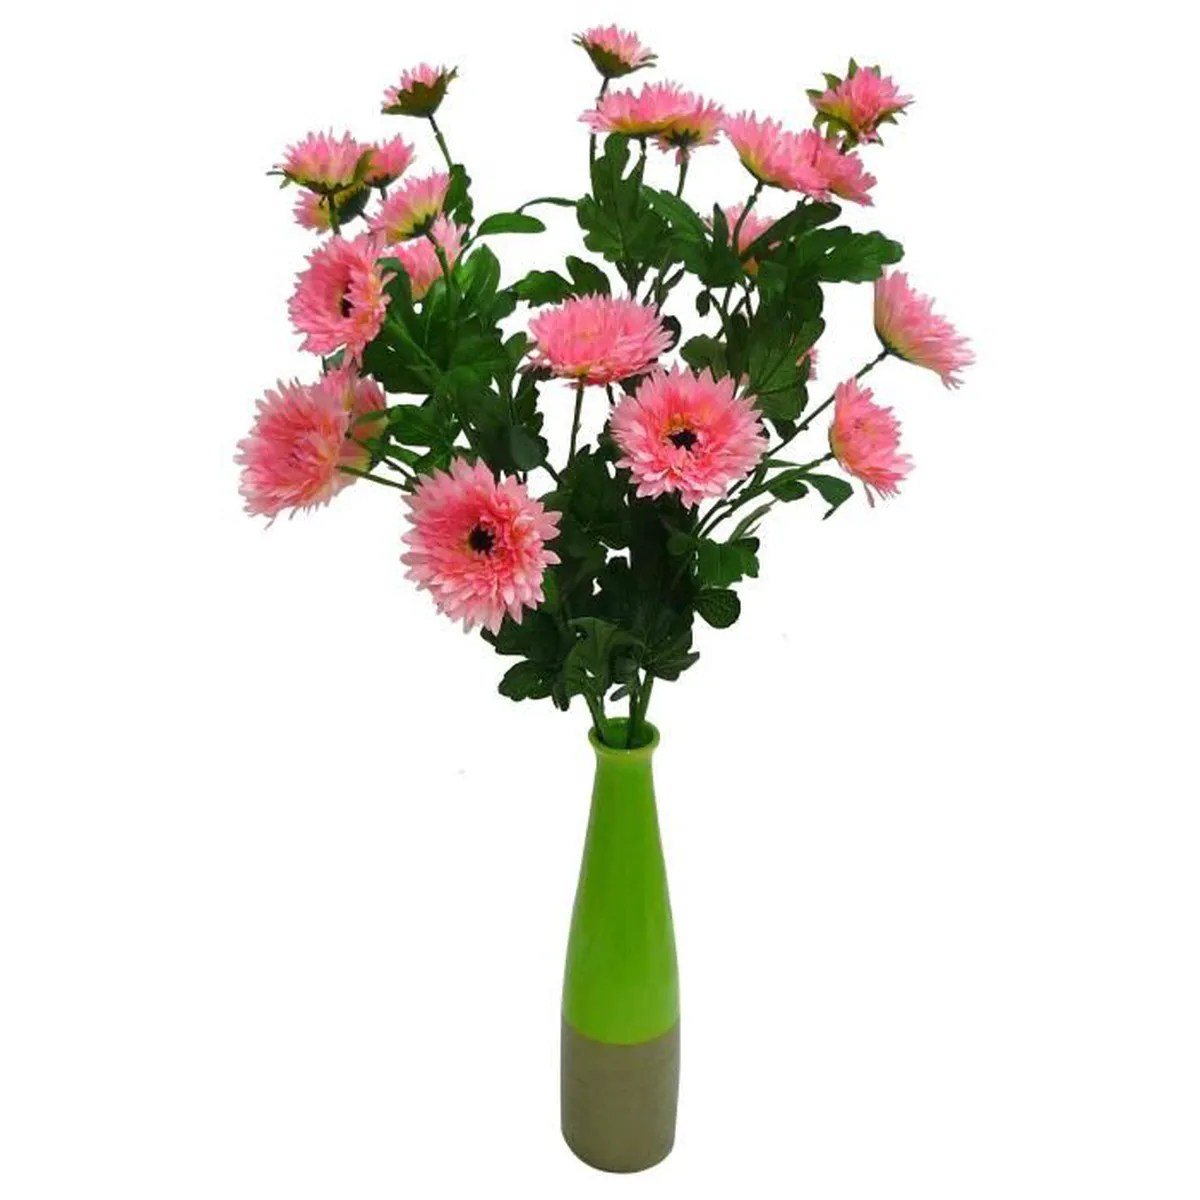 Deko Discount 24 Fleur Artificielle Deco 24 Marguerites 4 Tiges De 6 82